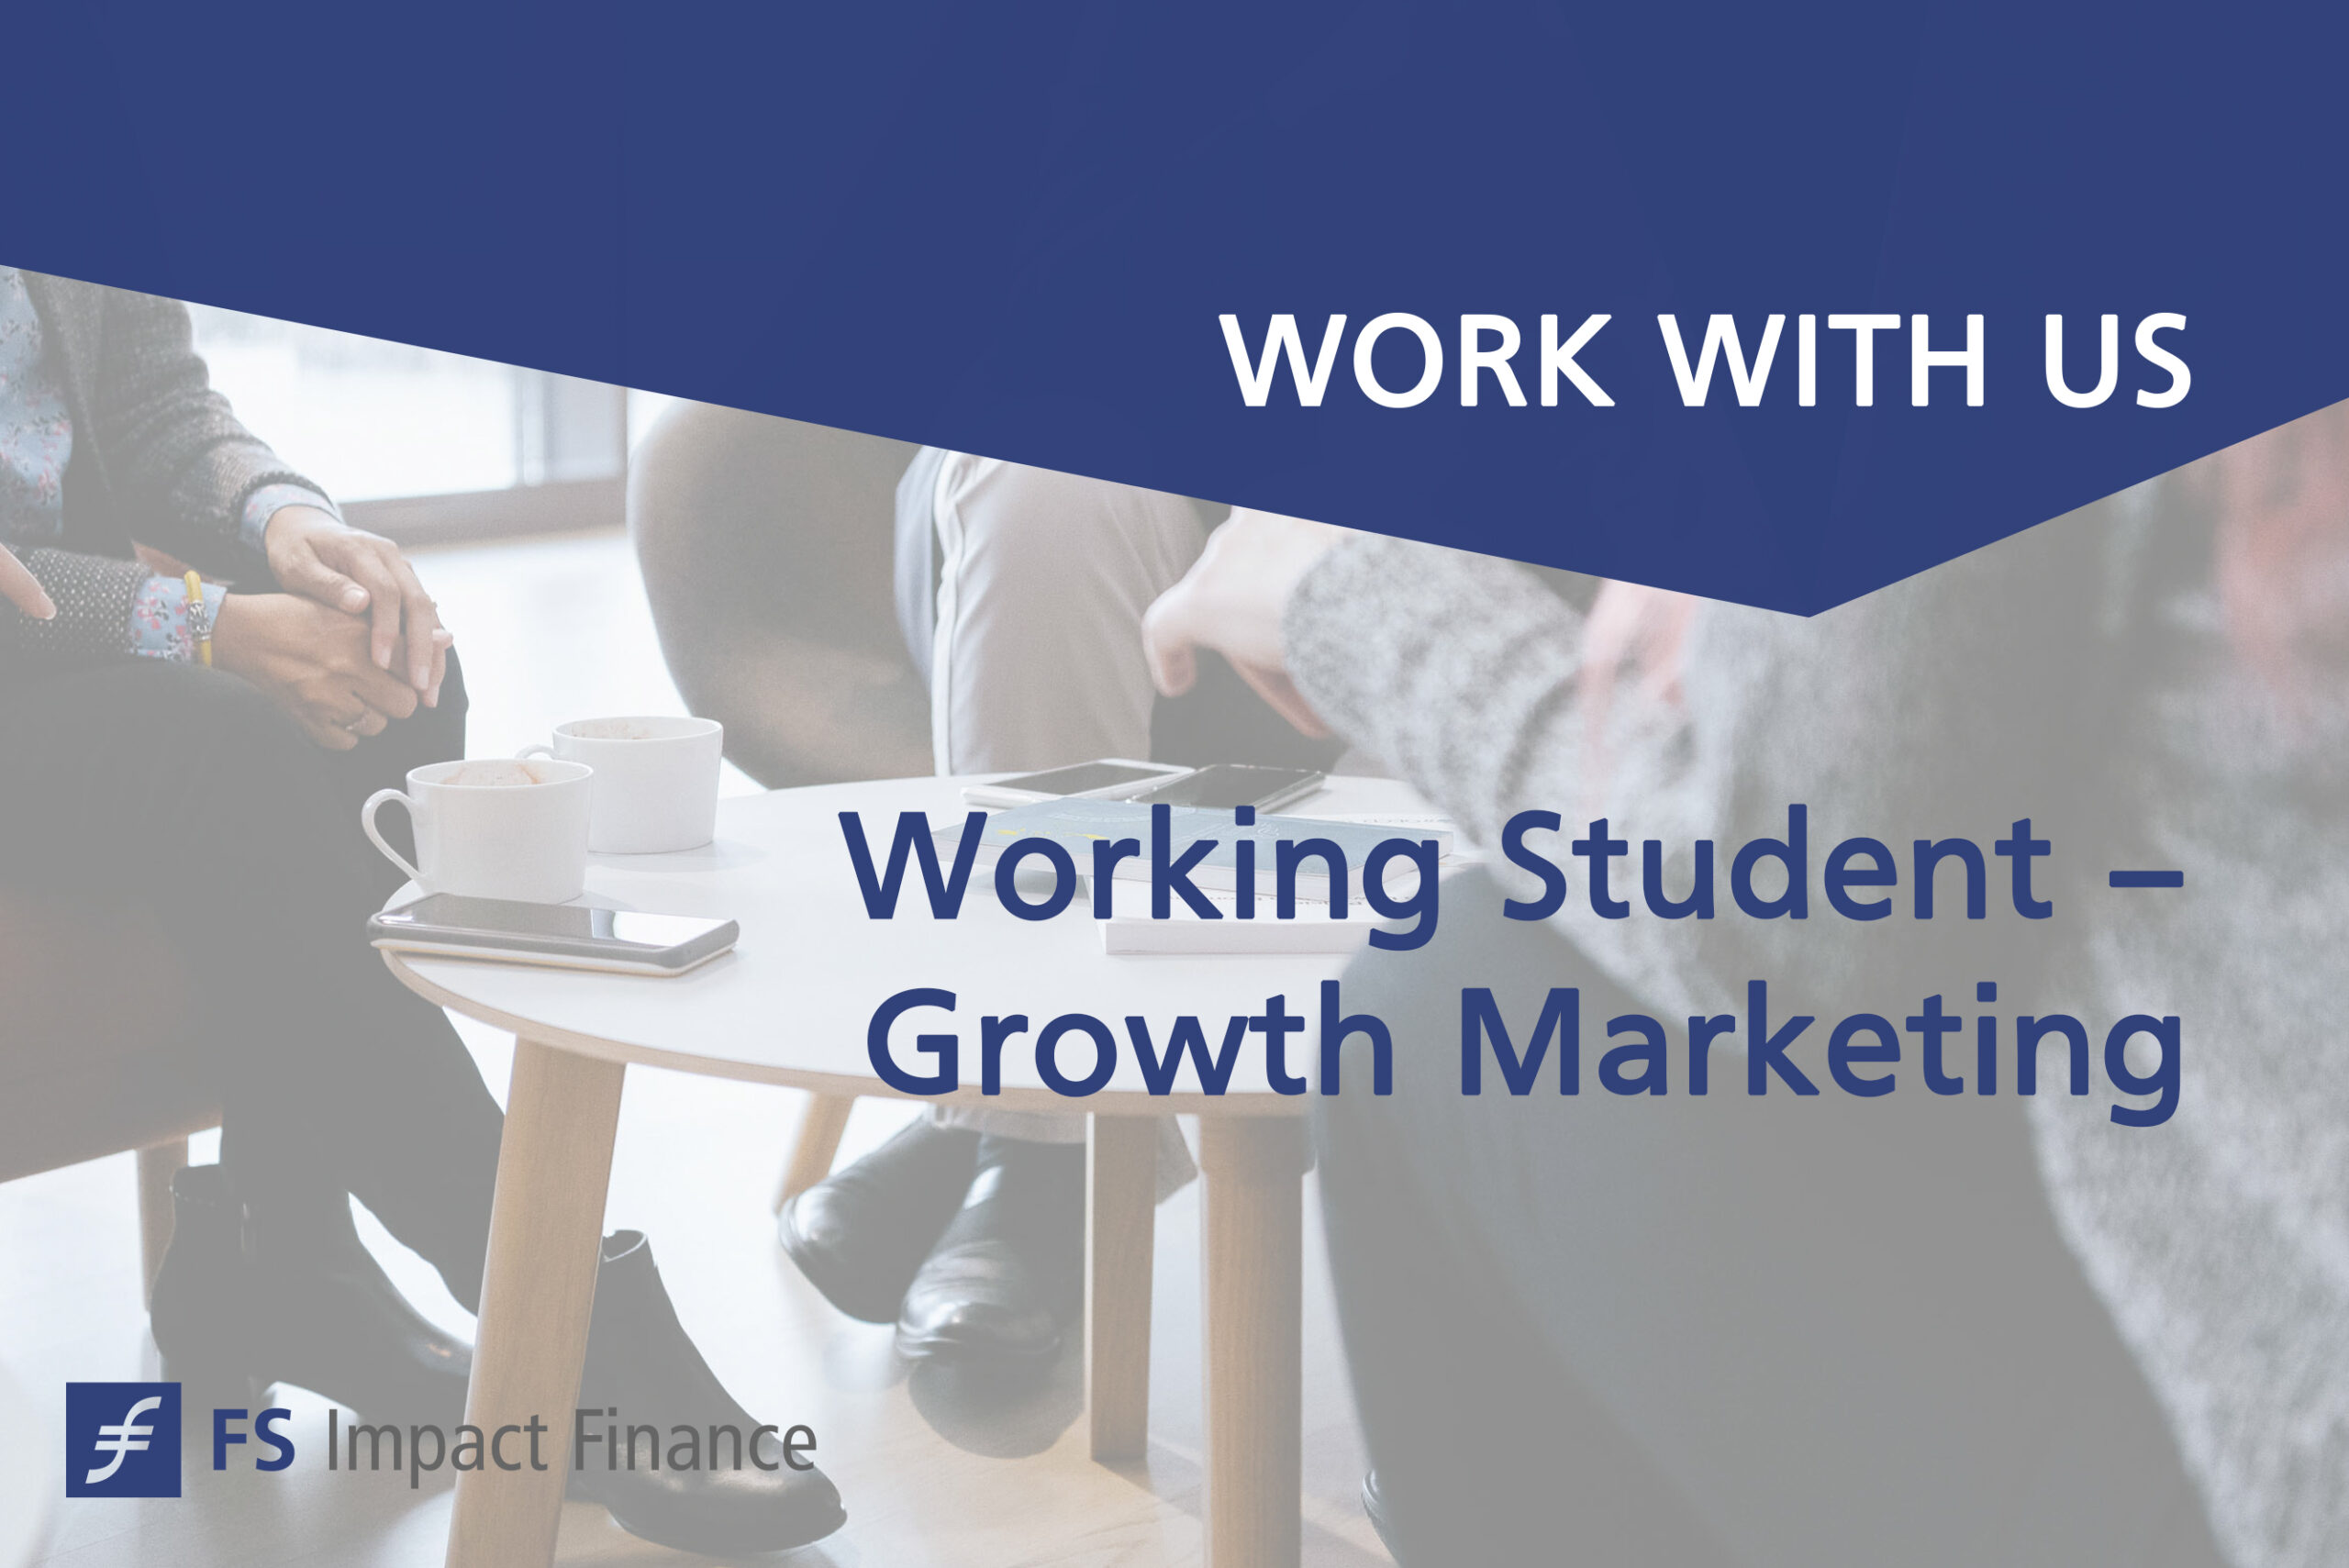 WORKING STUDENT – GROWTH MARKETING